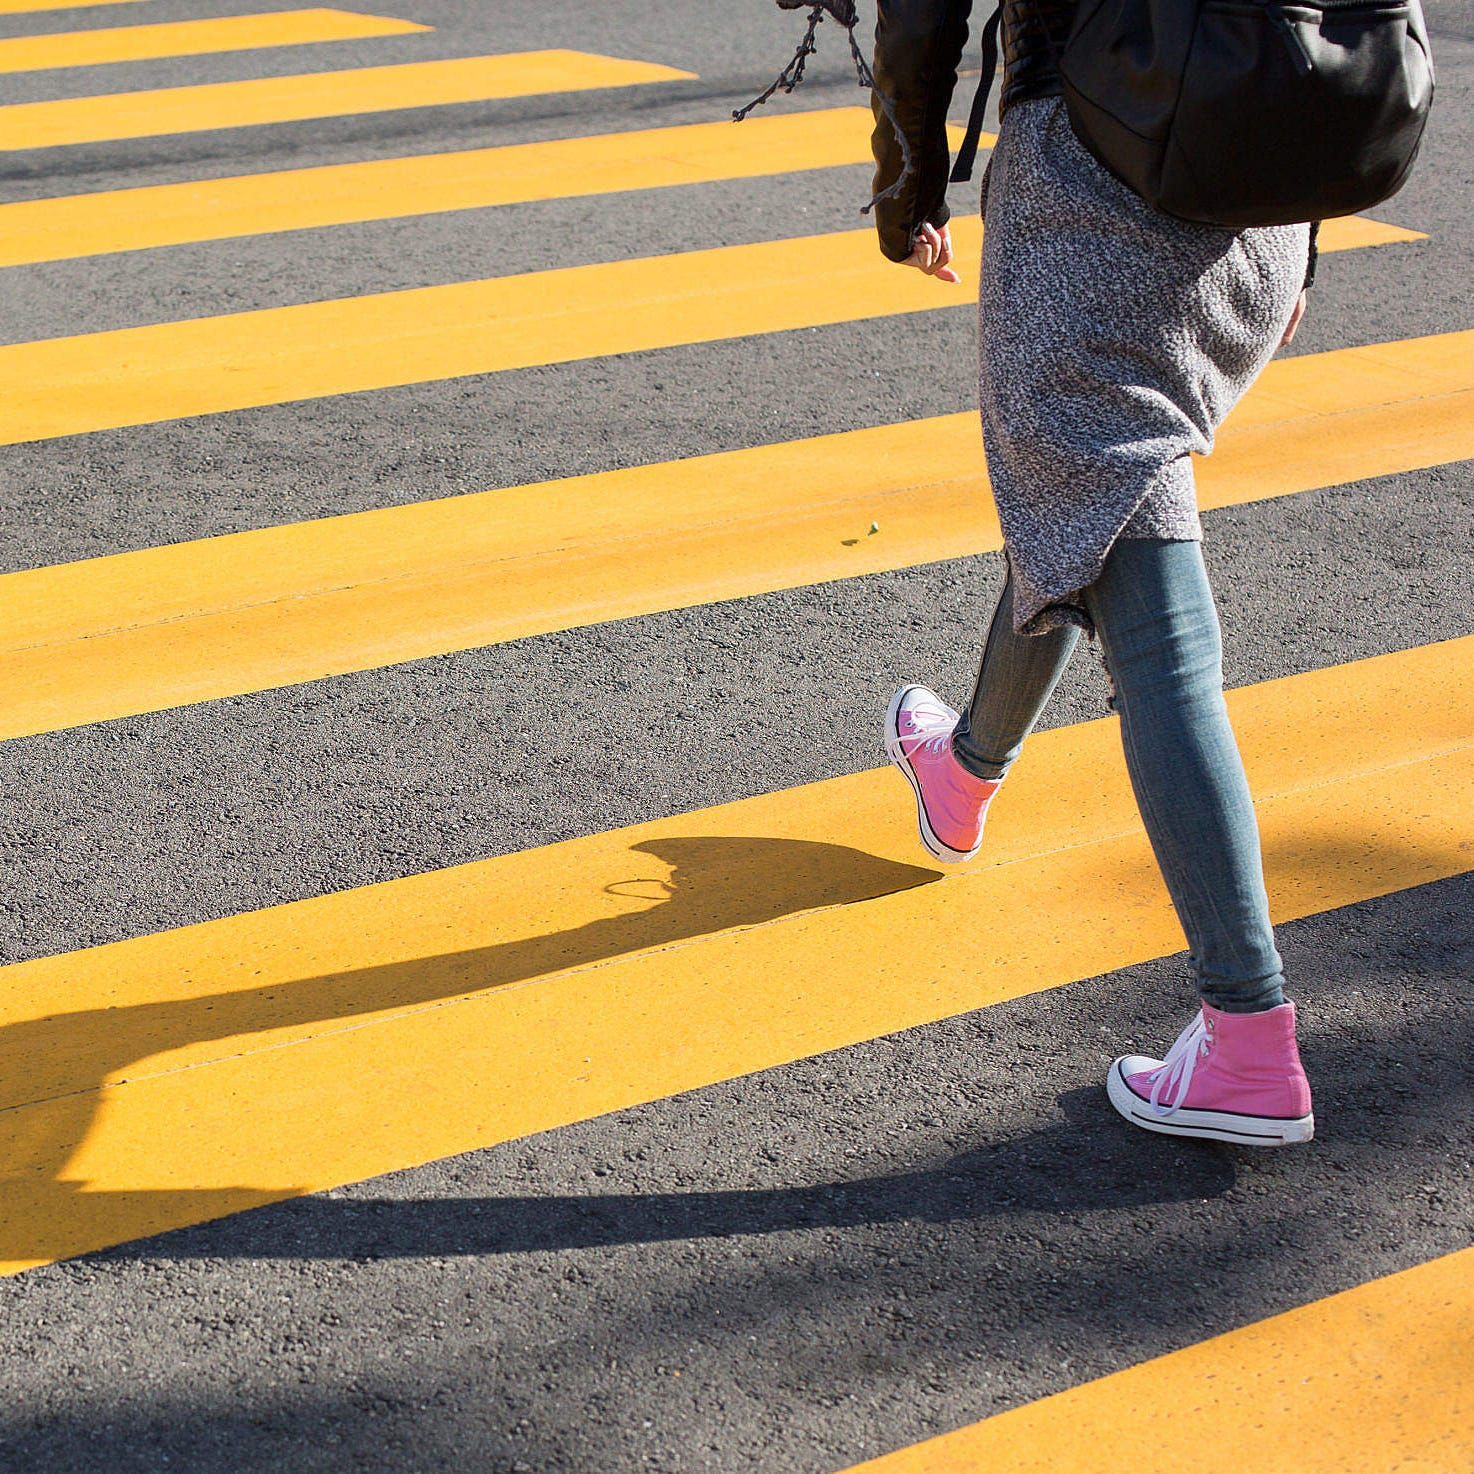 Crossing the street becomes a lost survival skill